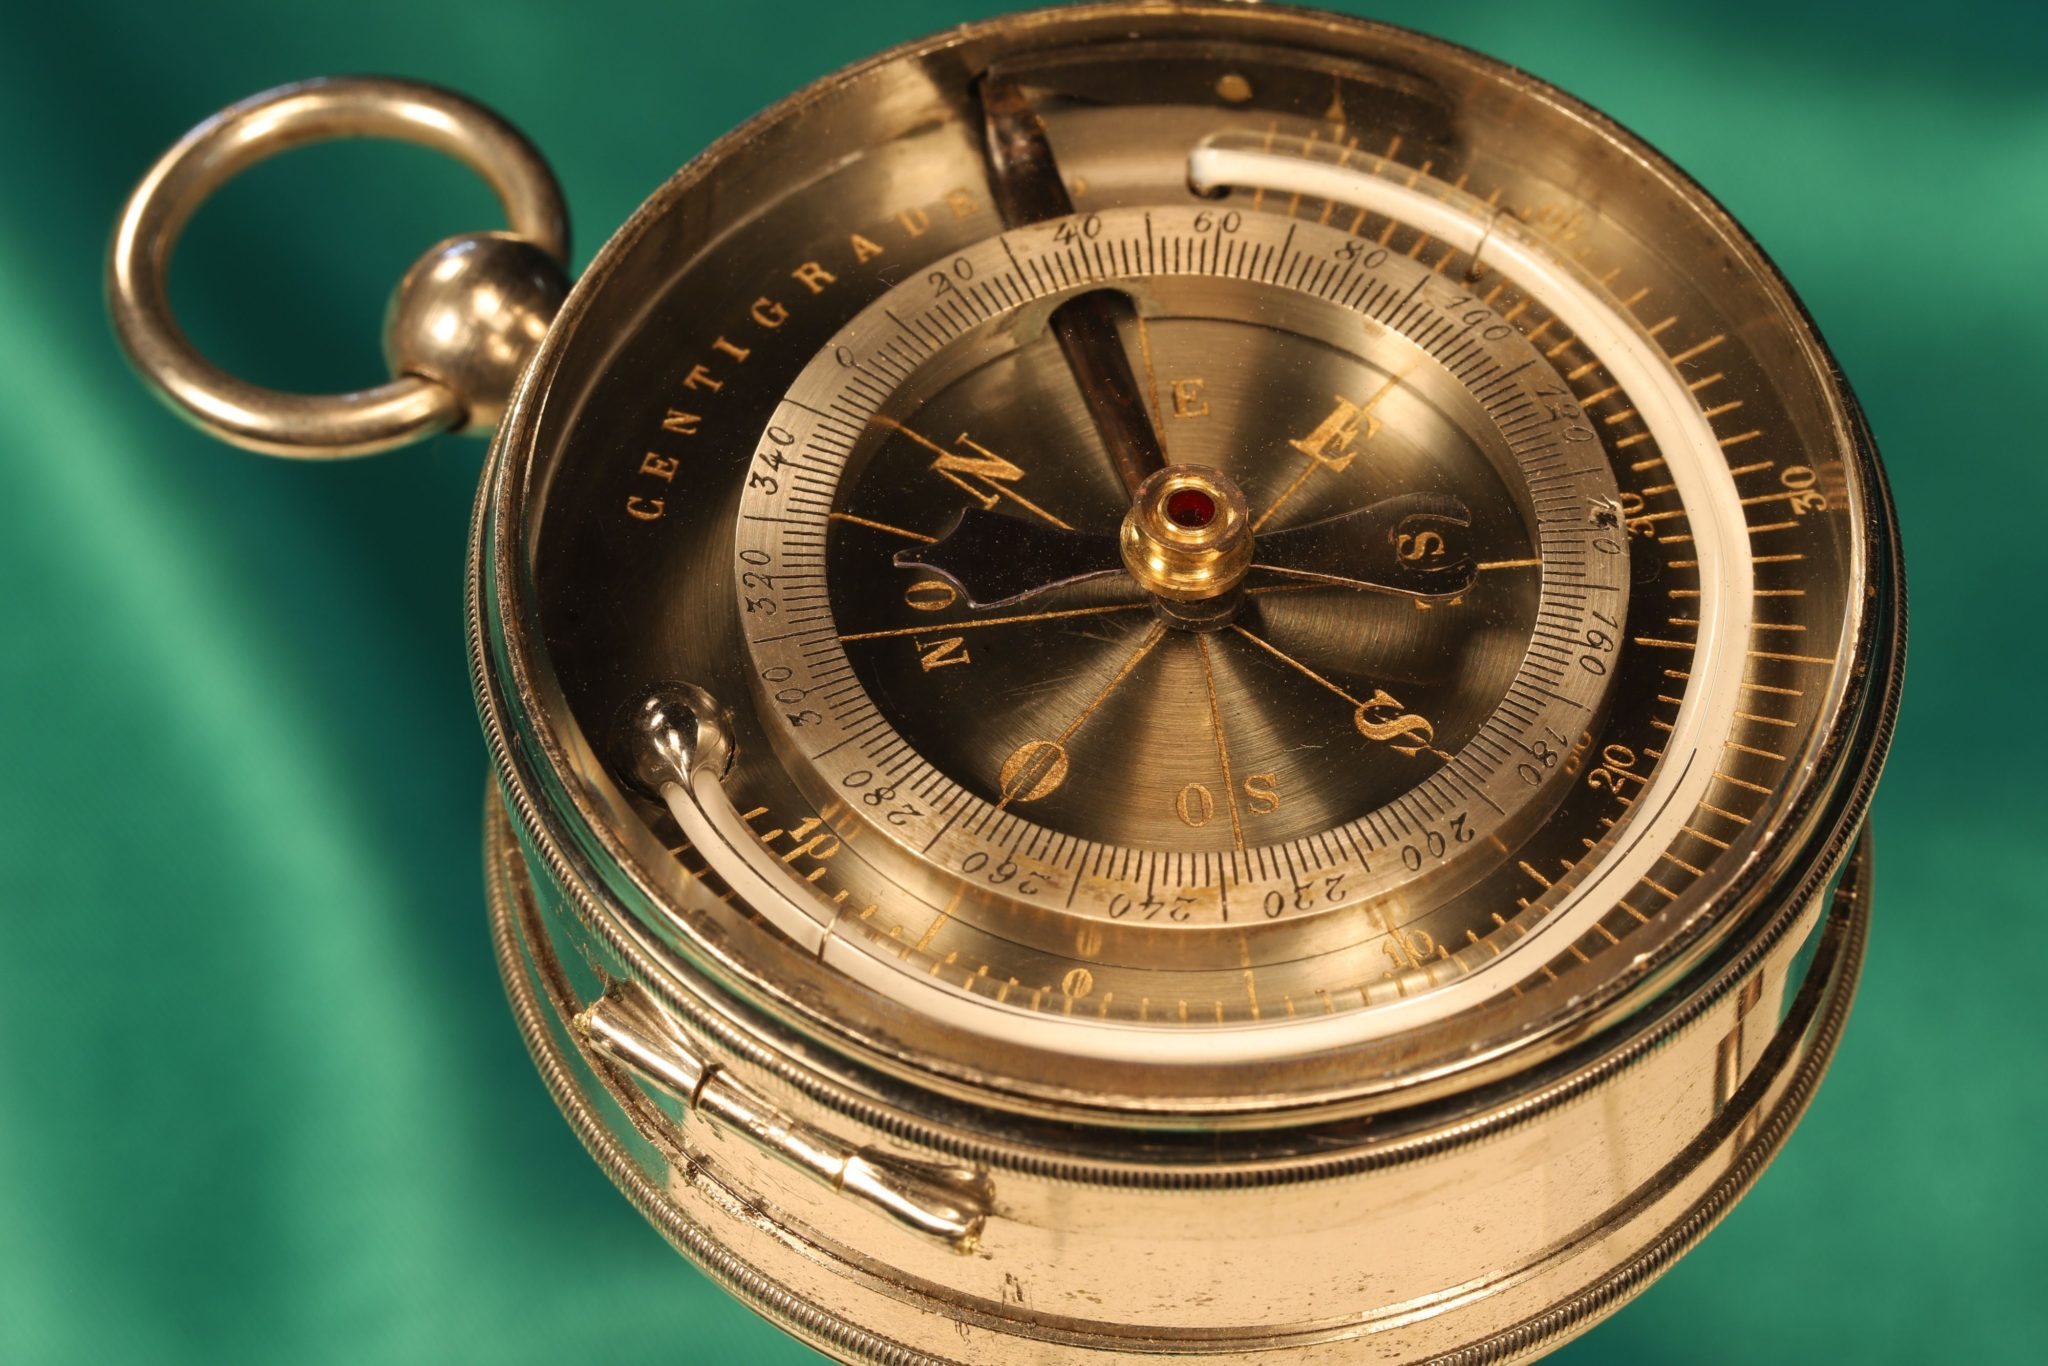 Image of Pocket Barometer Altimeter Compass Thermometer Compendium by Benzoni